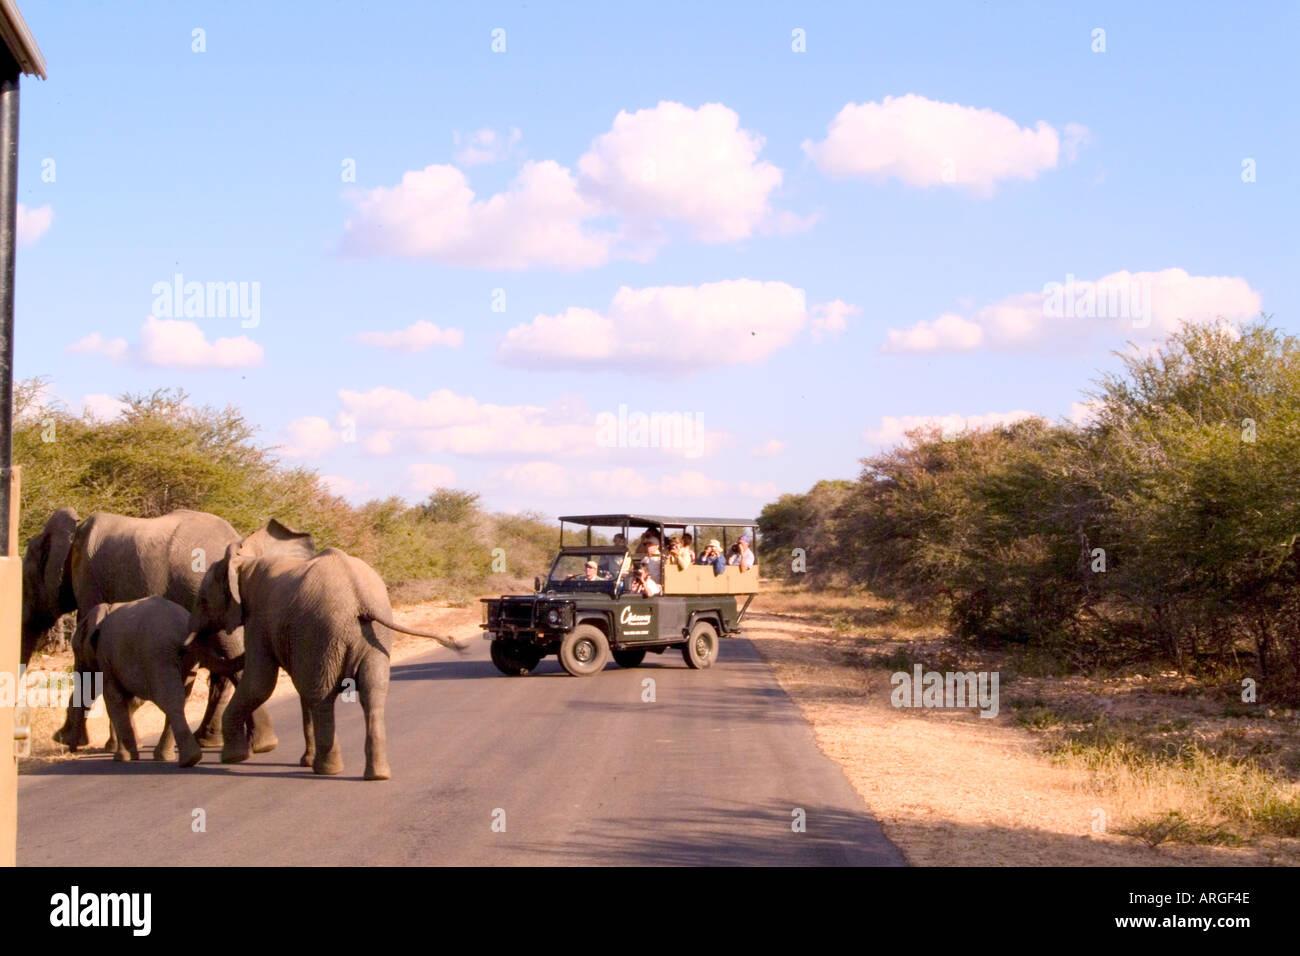 Tourists on Safari Sighting Rare Elephants on Road in Kruger National Park - Stock Image